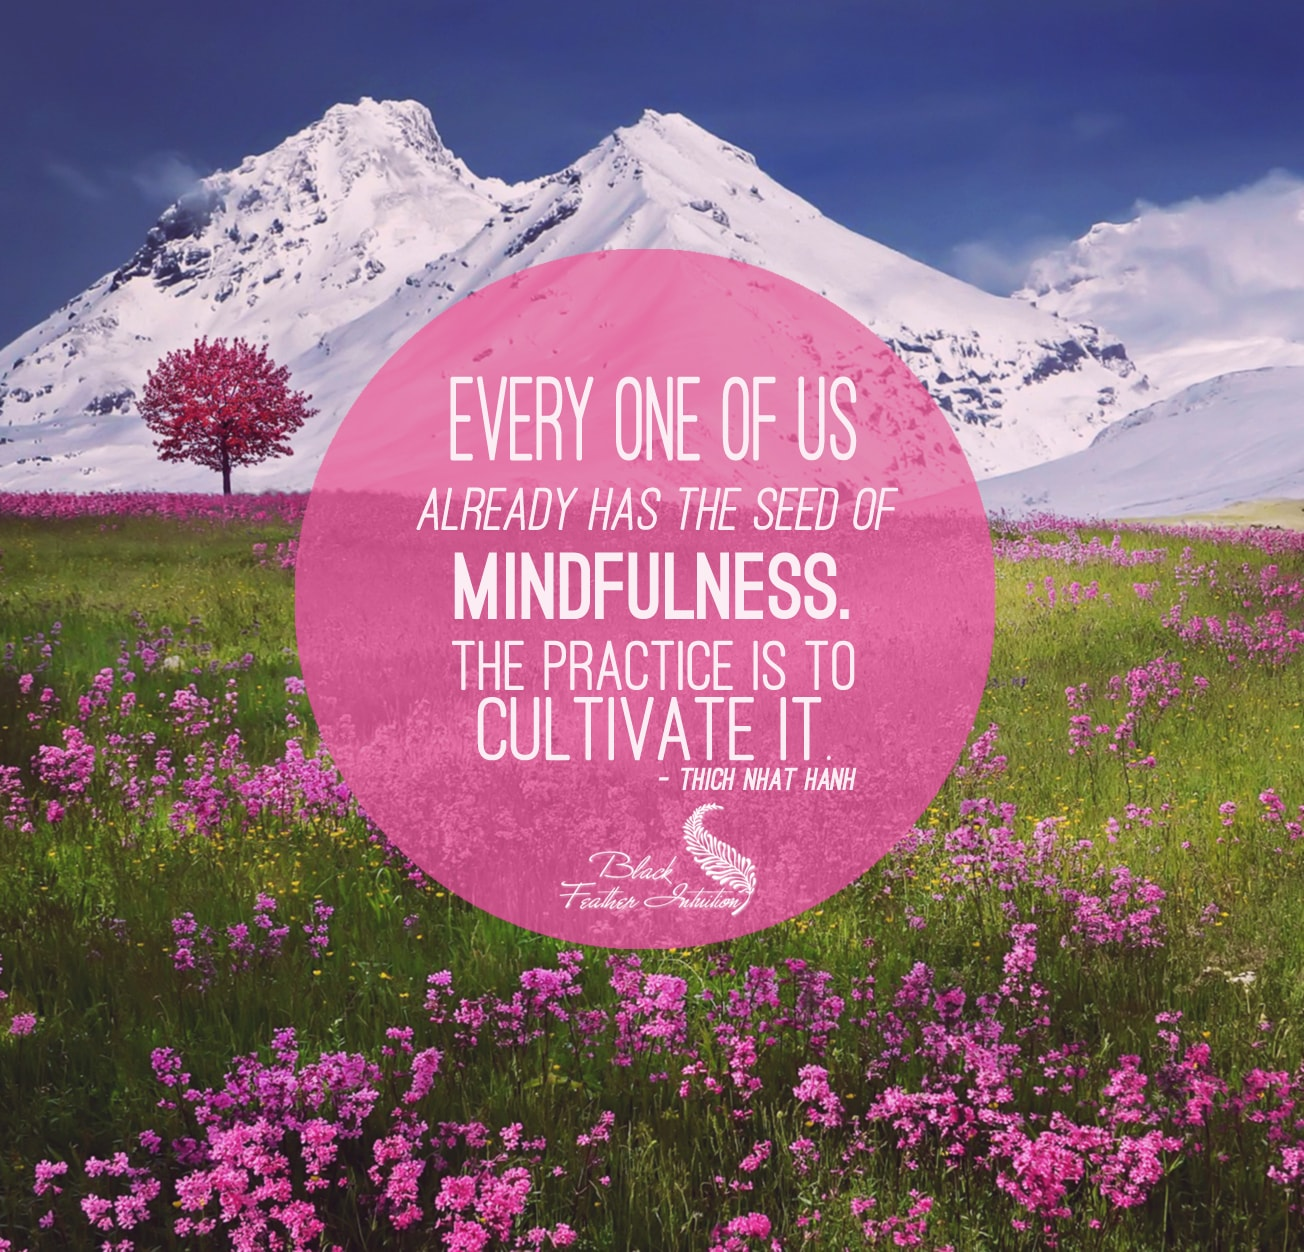 everyone of us already has mindfulness quote - thich nhat hanh